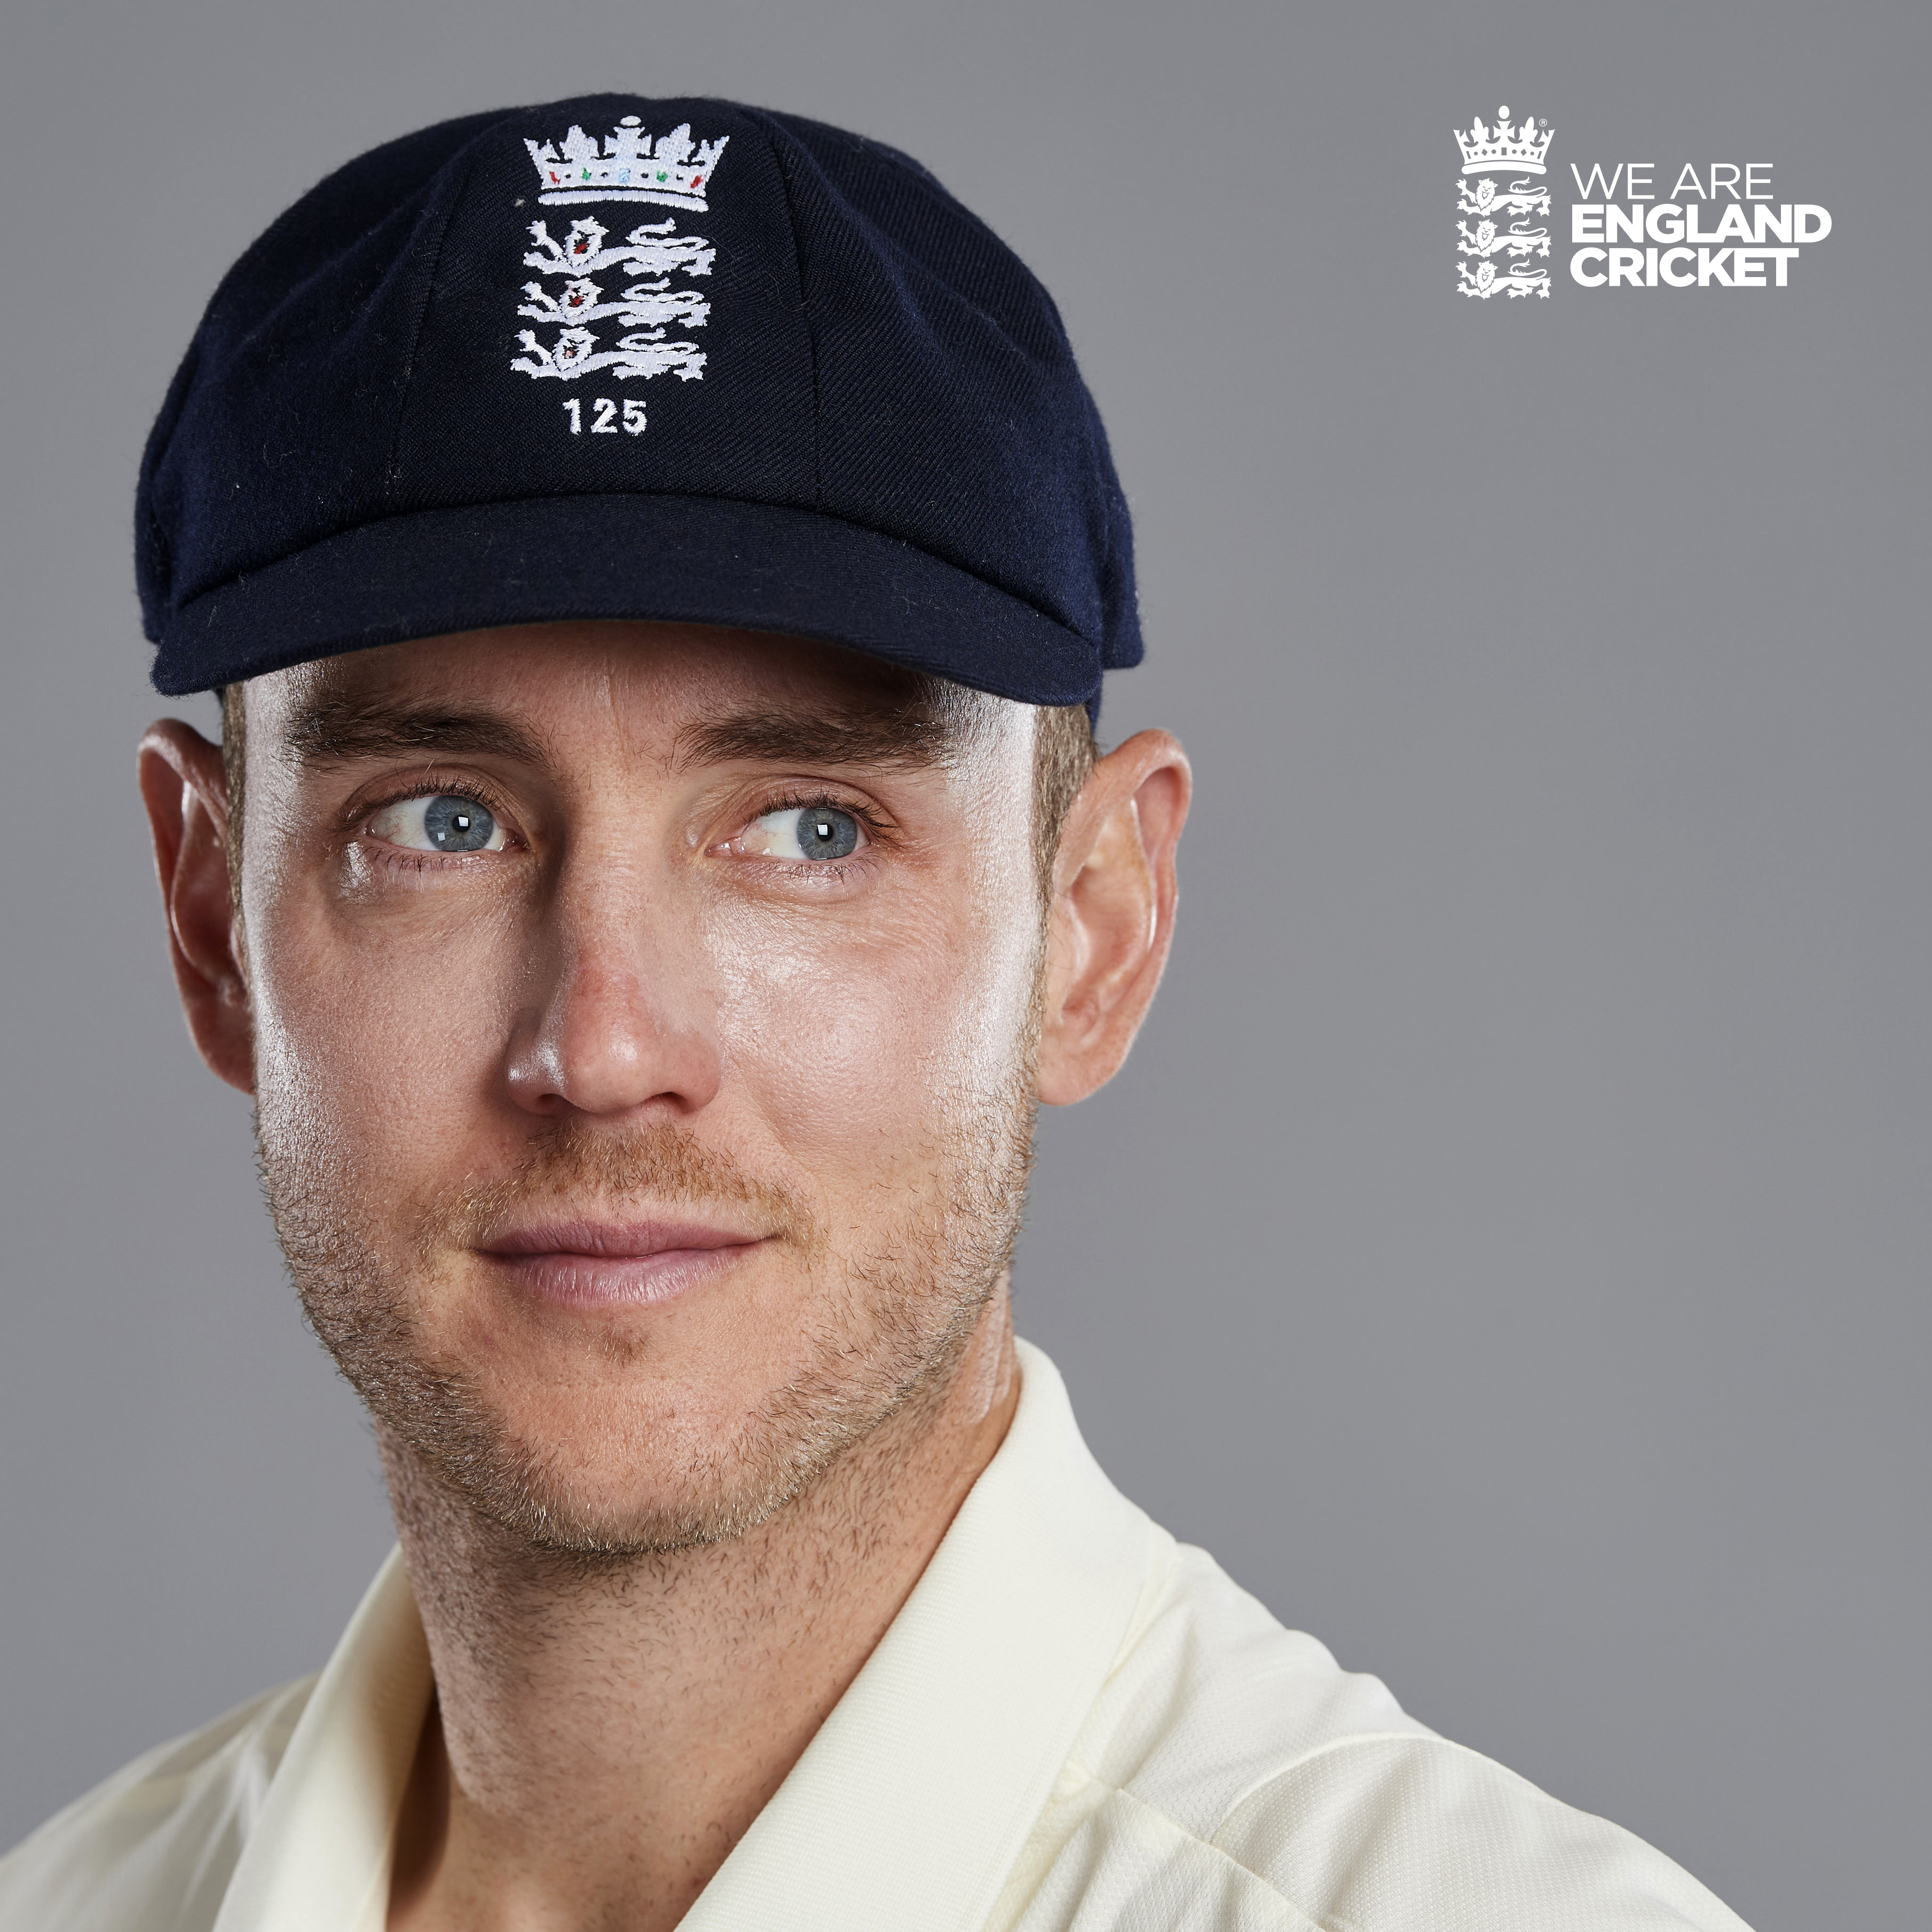 Stuart Broad appointed as the Vice-Captain of England's Test squad